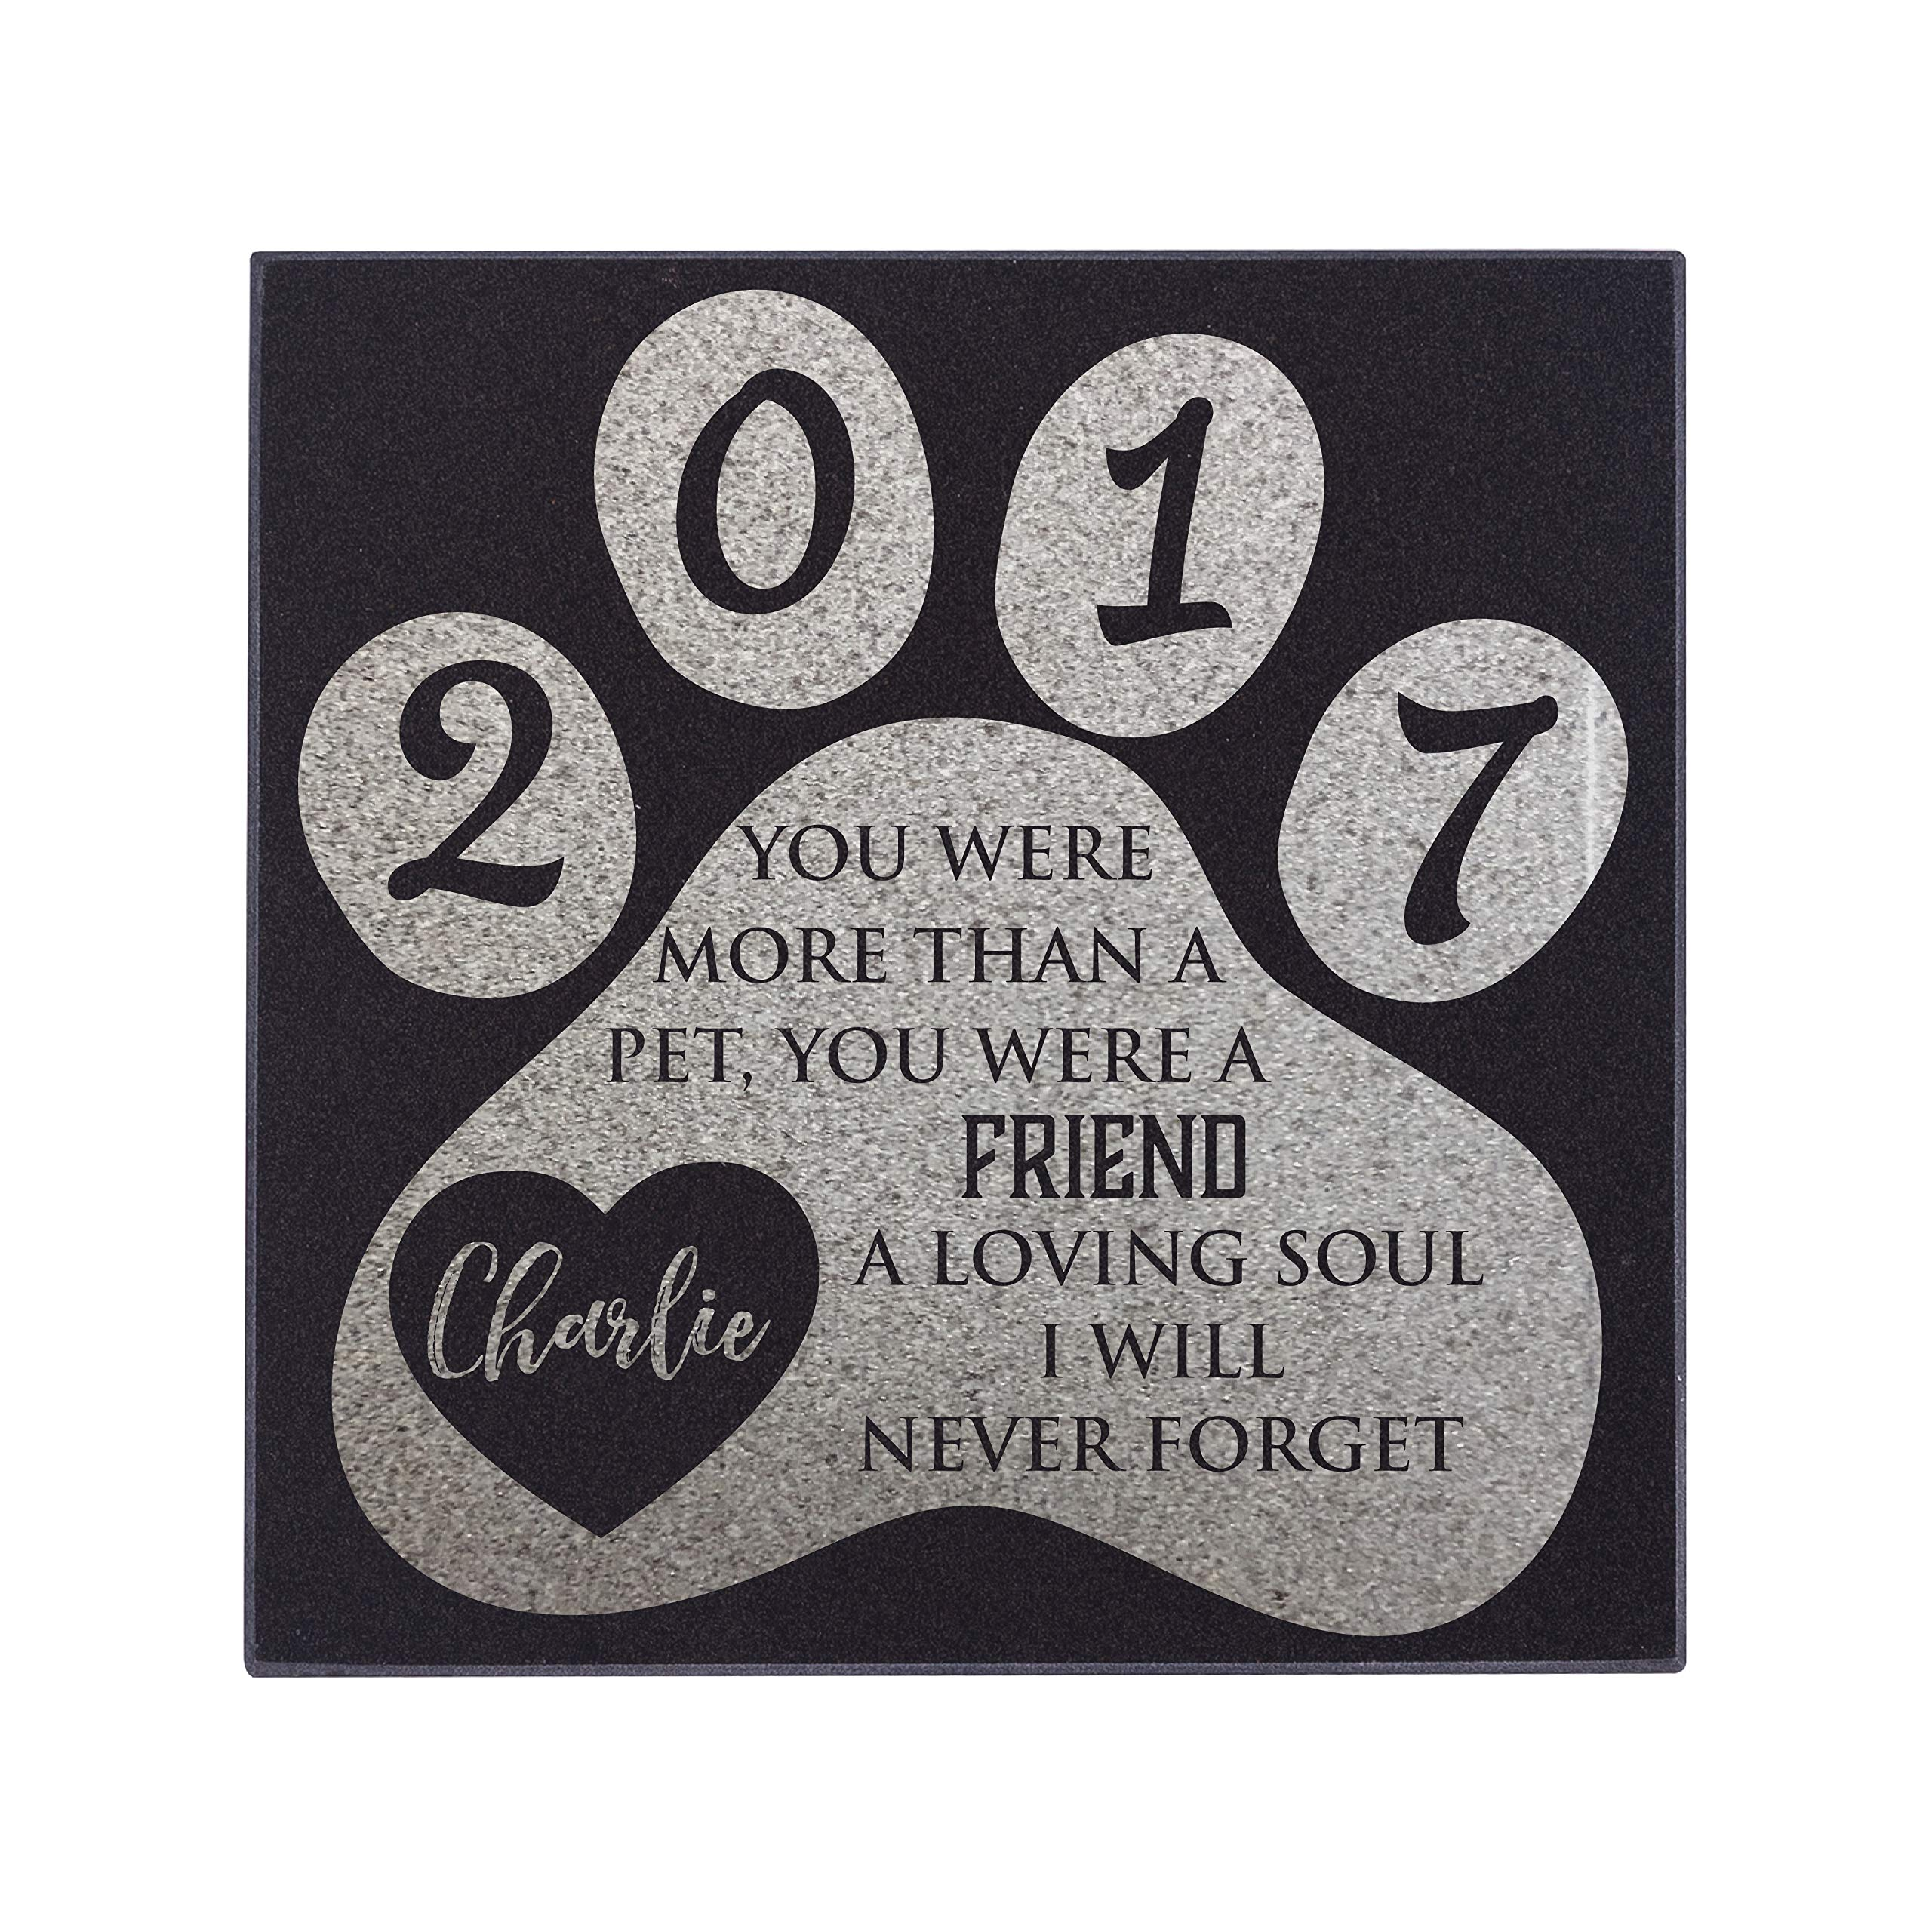 Personalized Granite Pet Memorial Stone A Loving Soul Customized Tombstone - Loss of Pet Gift- Indoor Outdoor Dog or Cat for Garden Backyard 6'' x 6'' #9 by Personalization Lab